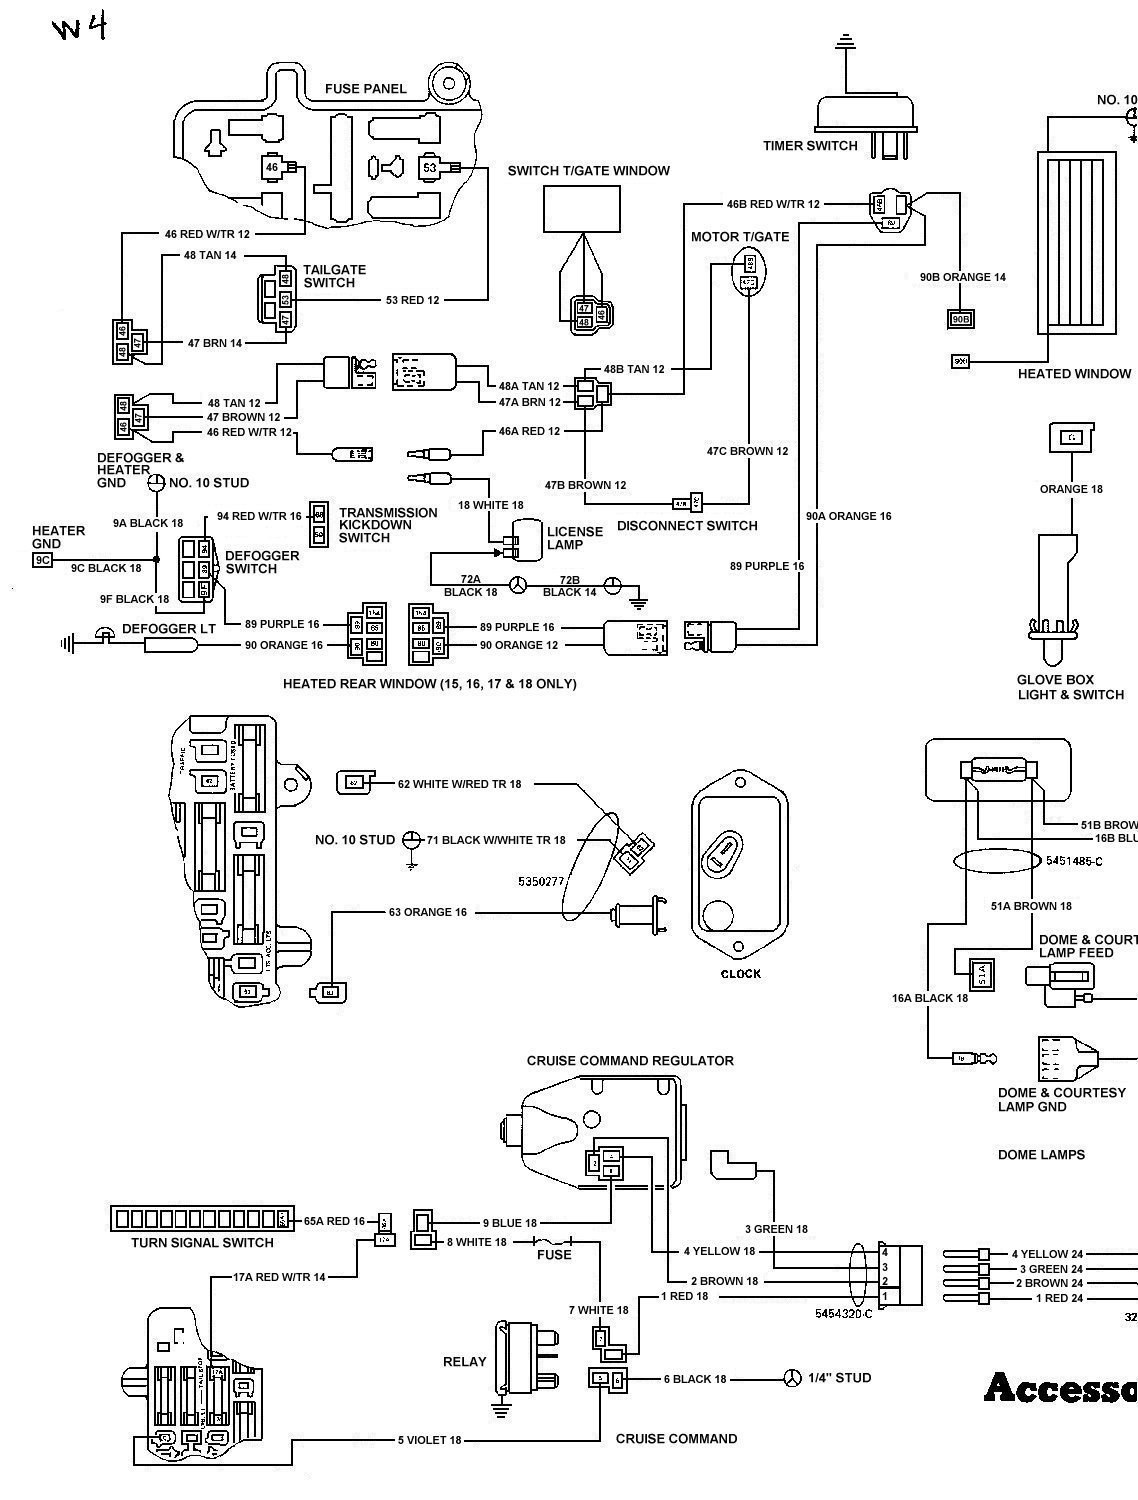 wiring diagram additionally 1984 jeep cj7 wiring diagram